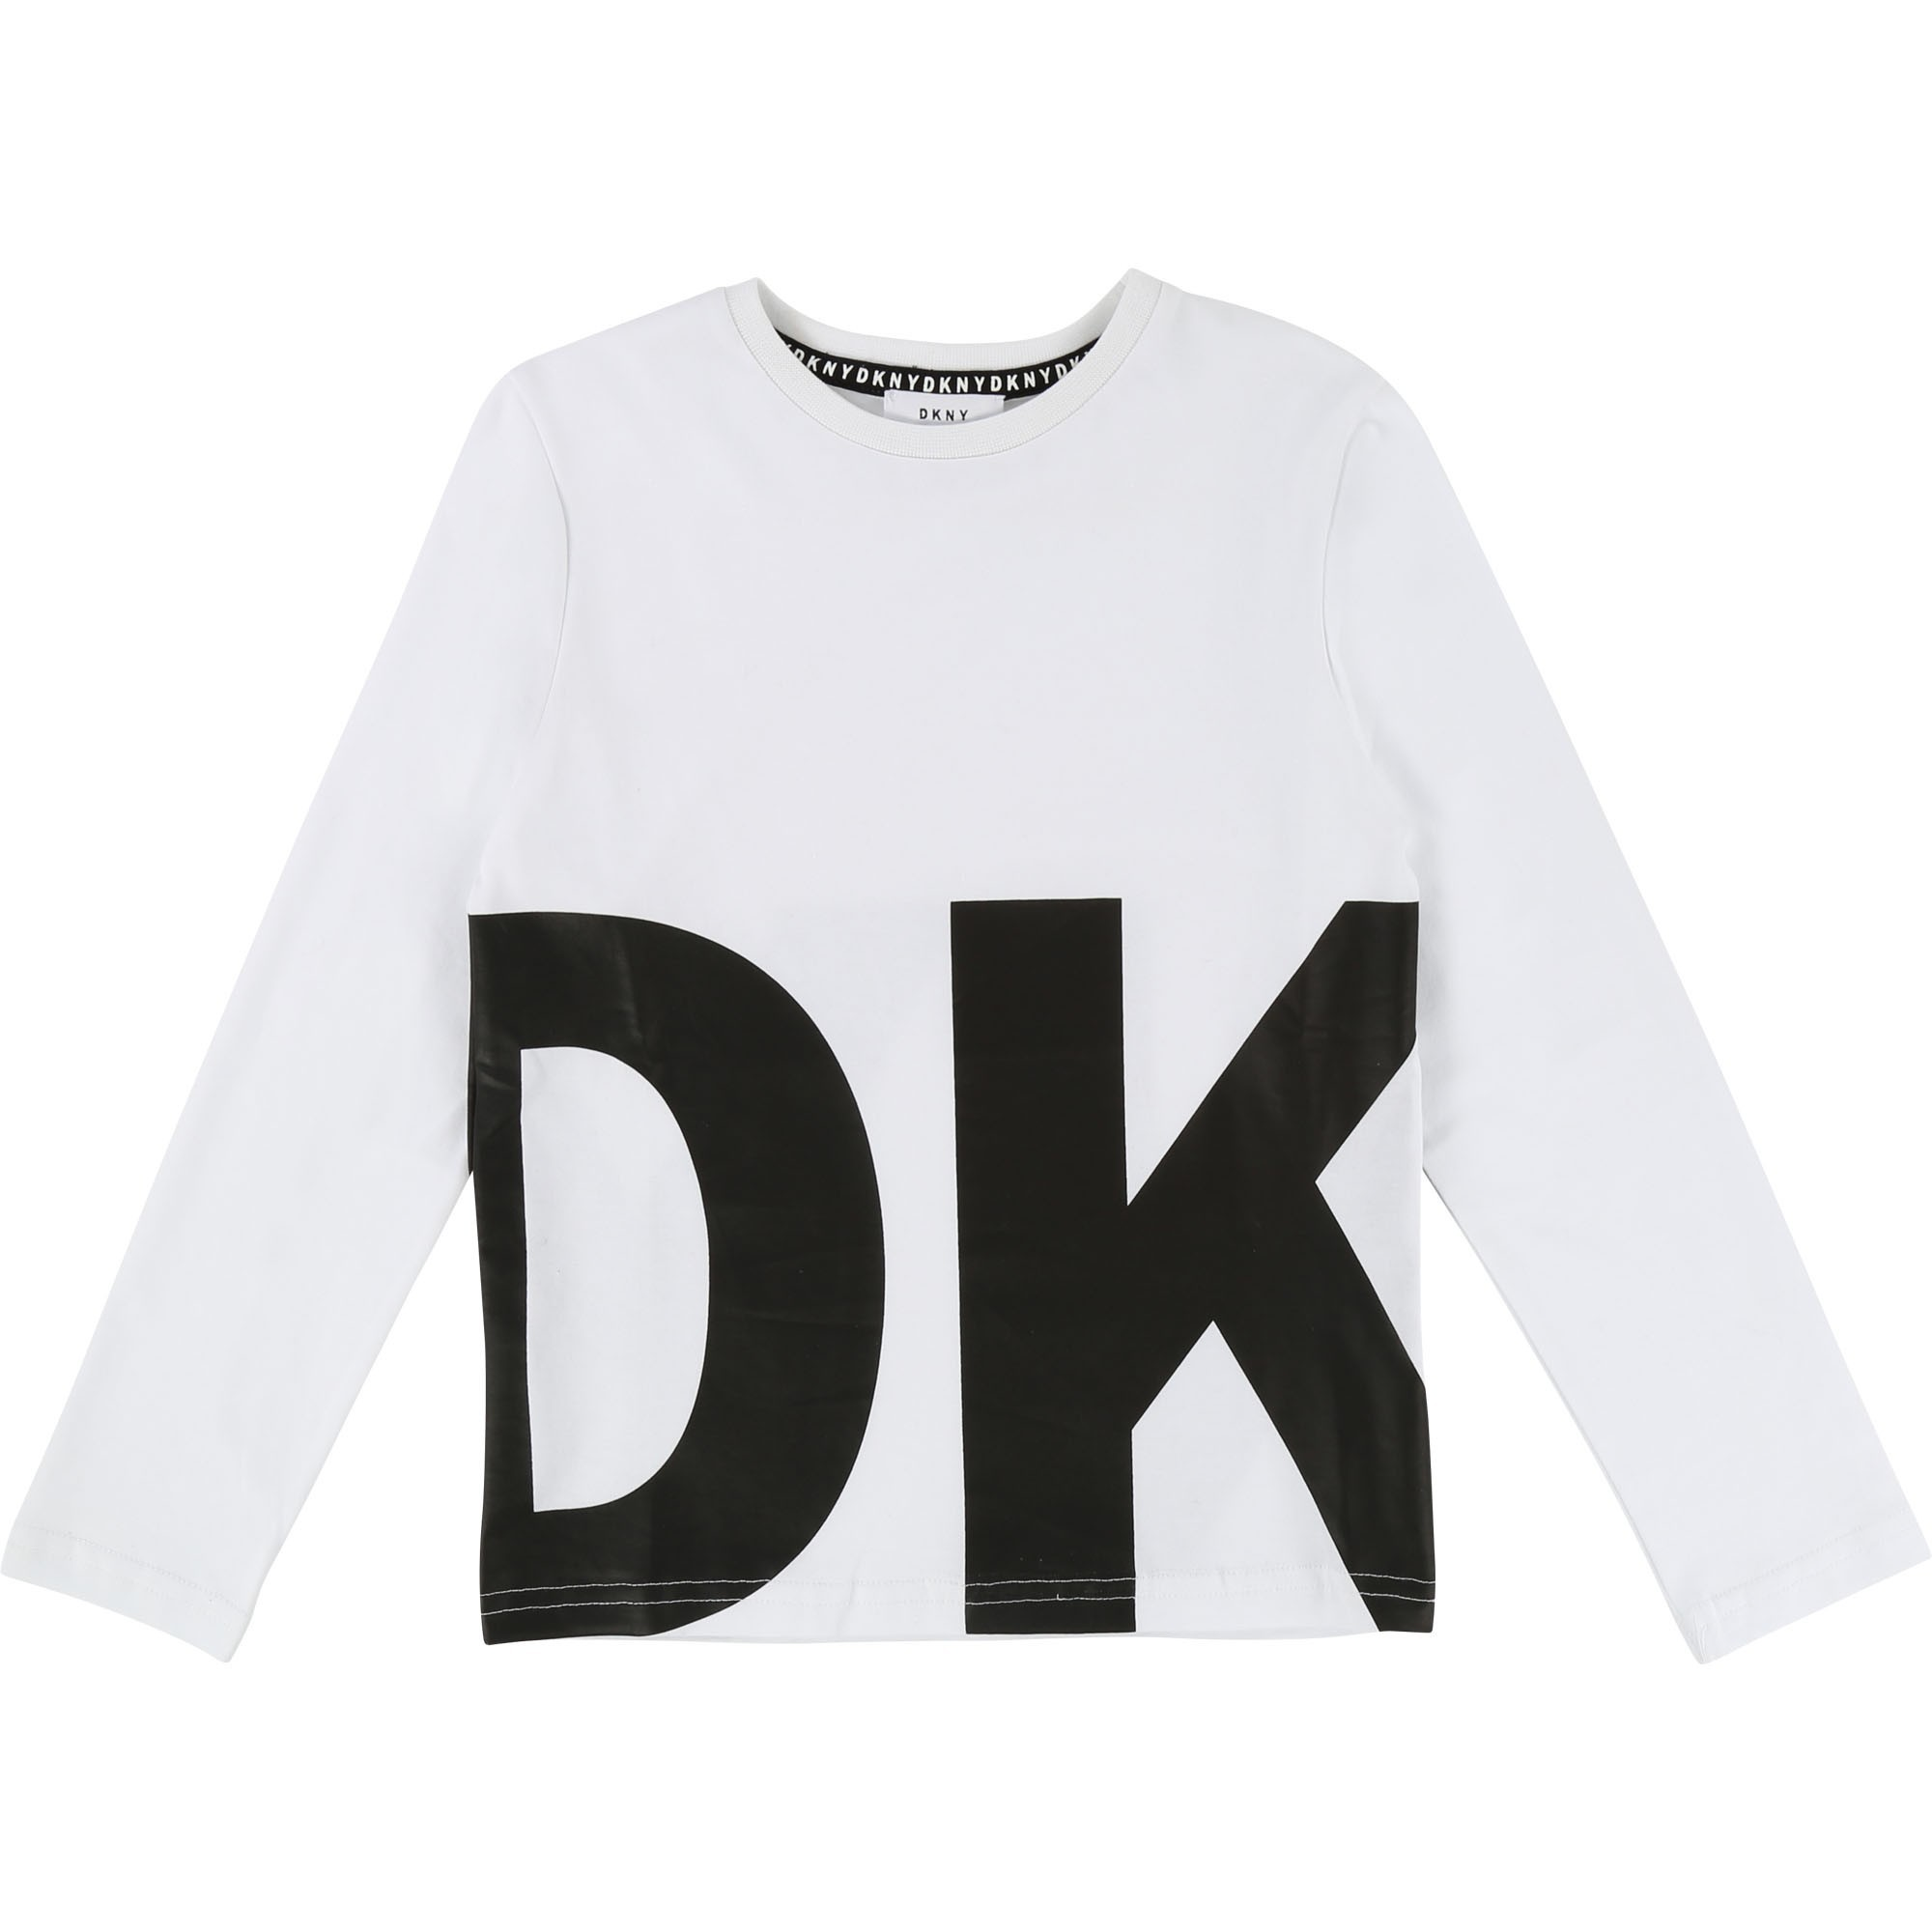 47e23158 DKNY Long-sleeve T-shirt boy white - | Kids around